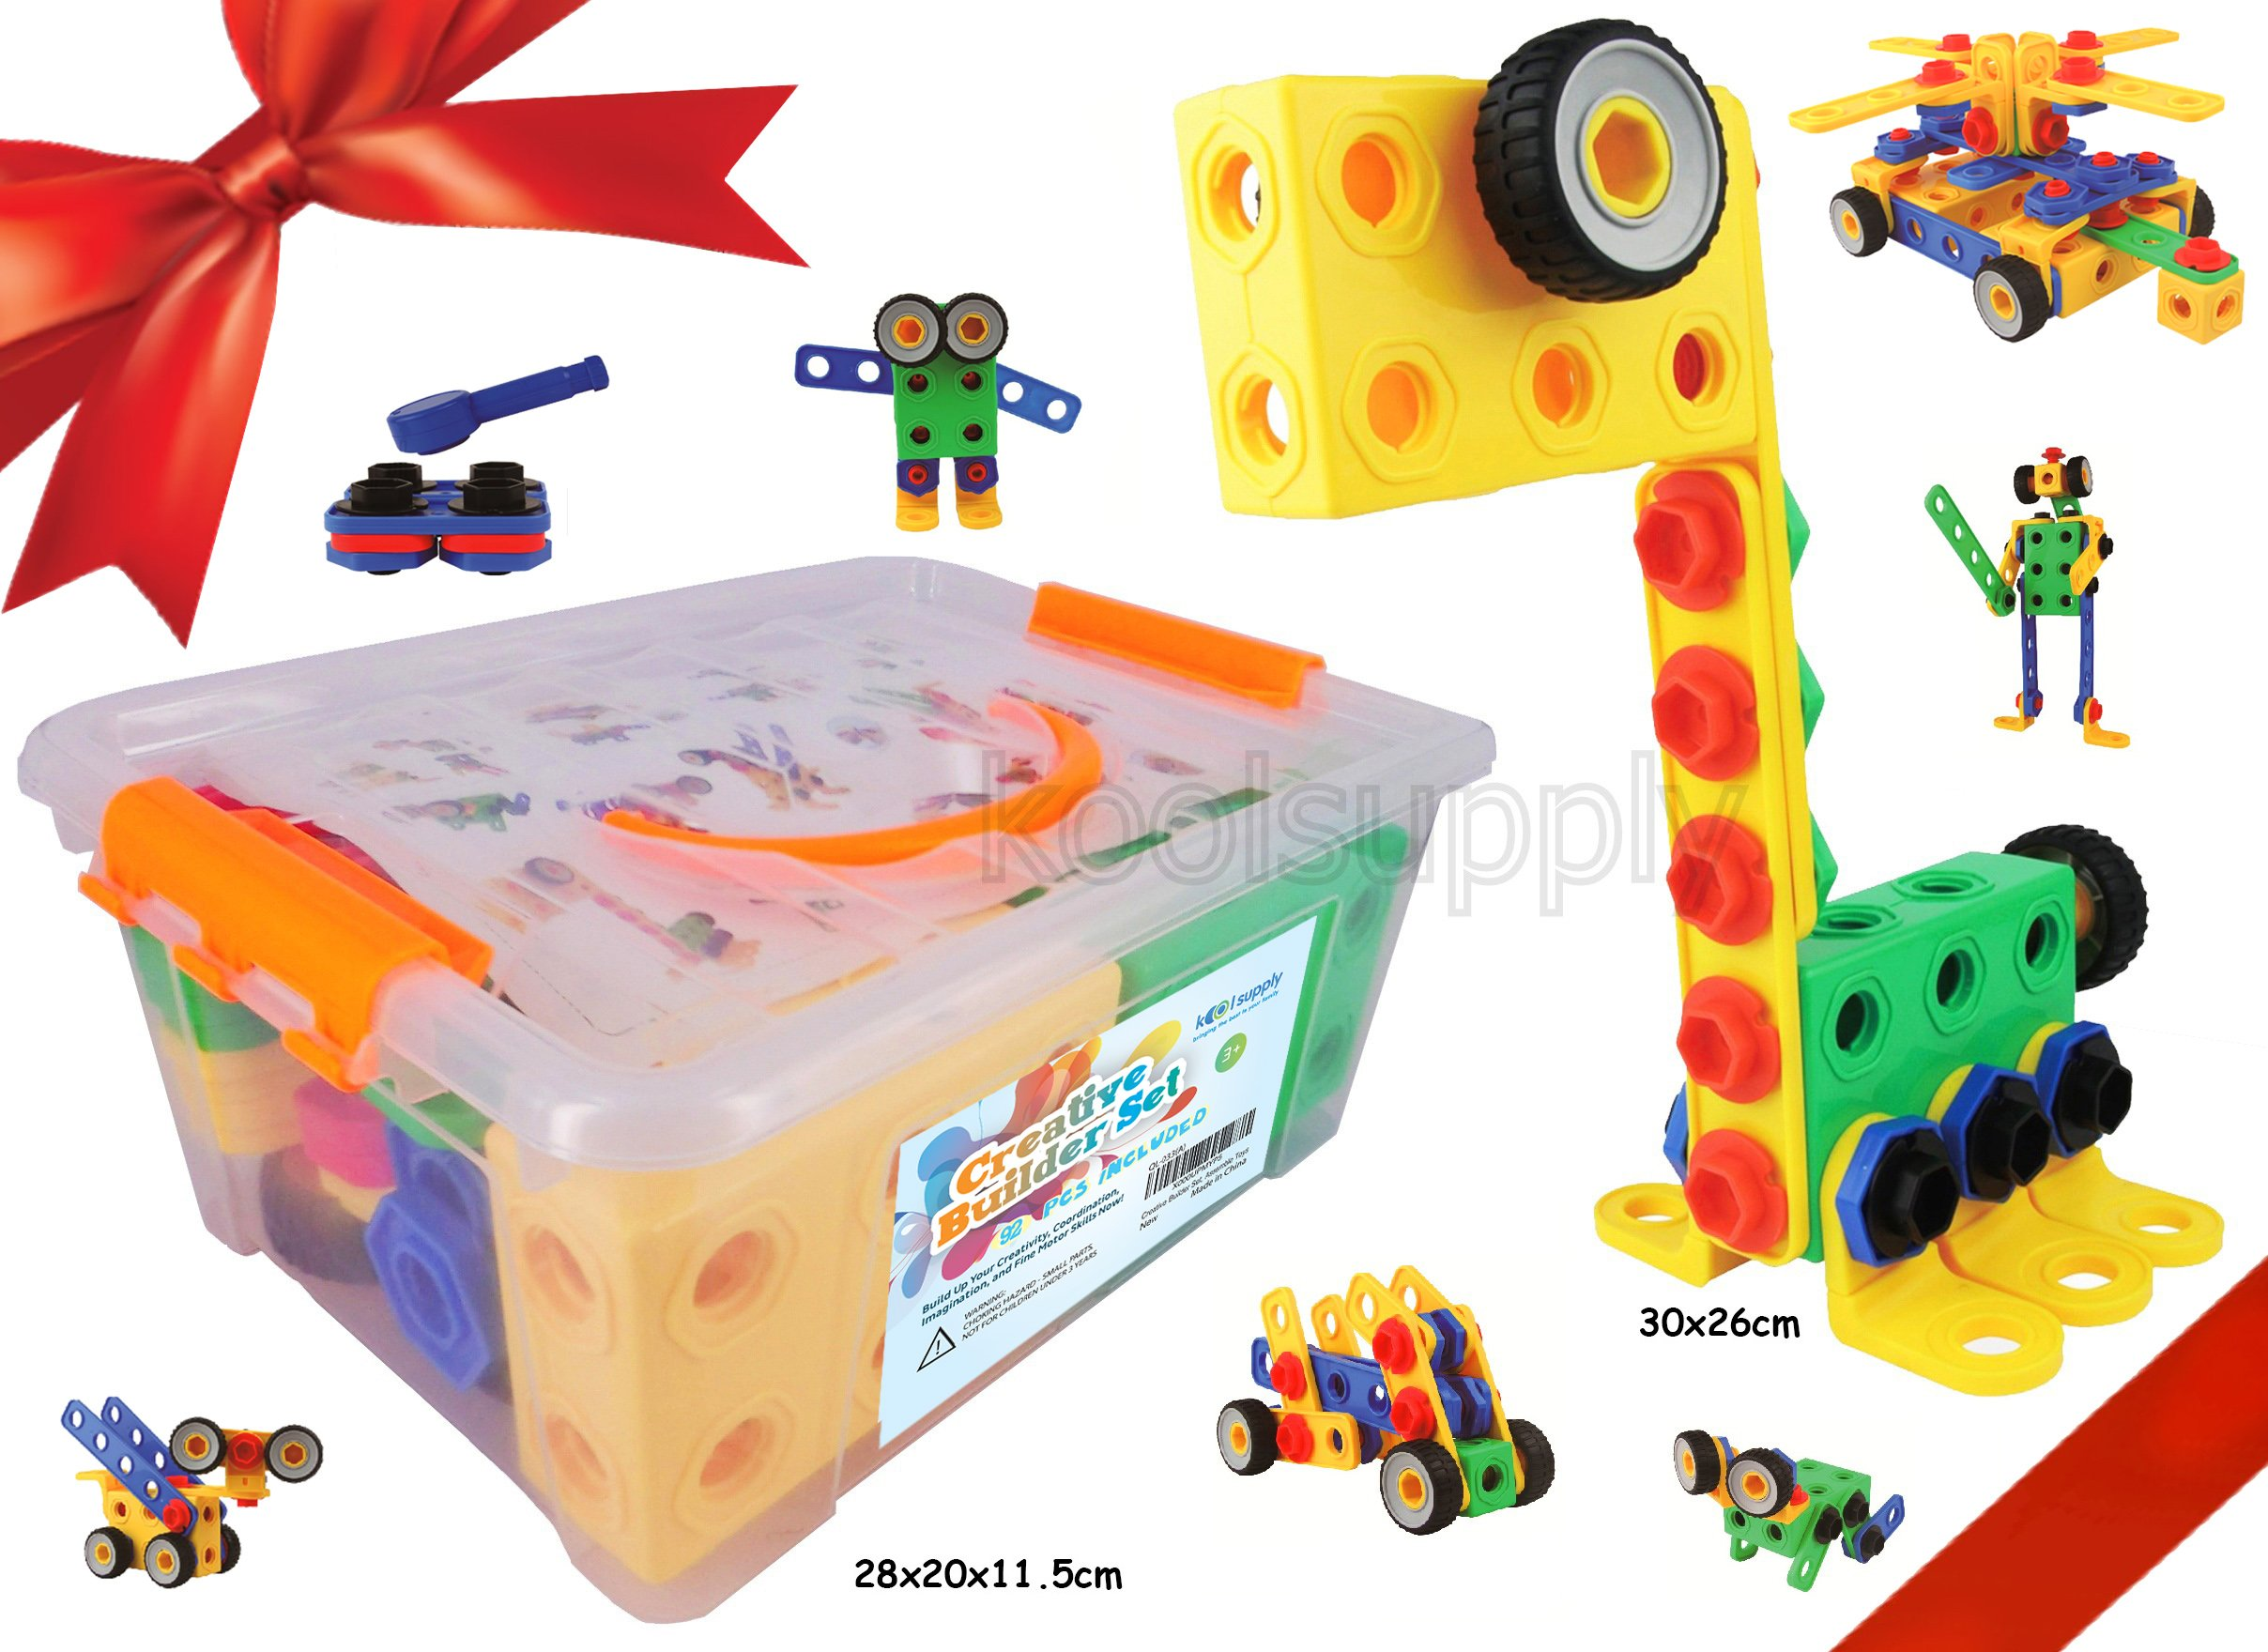 Creative Builder Set Original 92 Pieces STEM Building Blocks